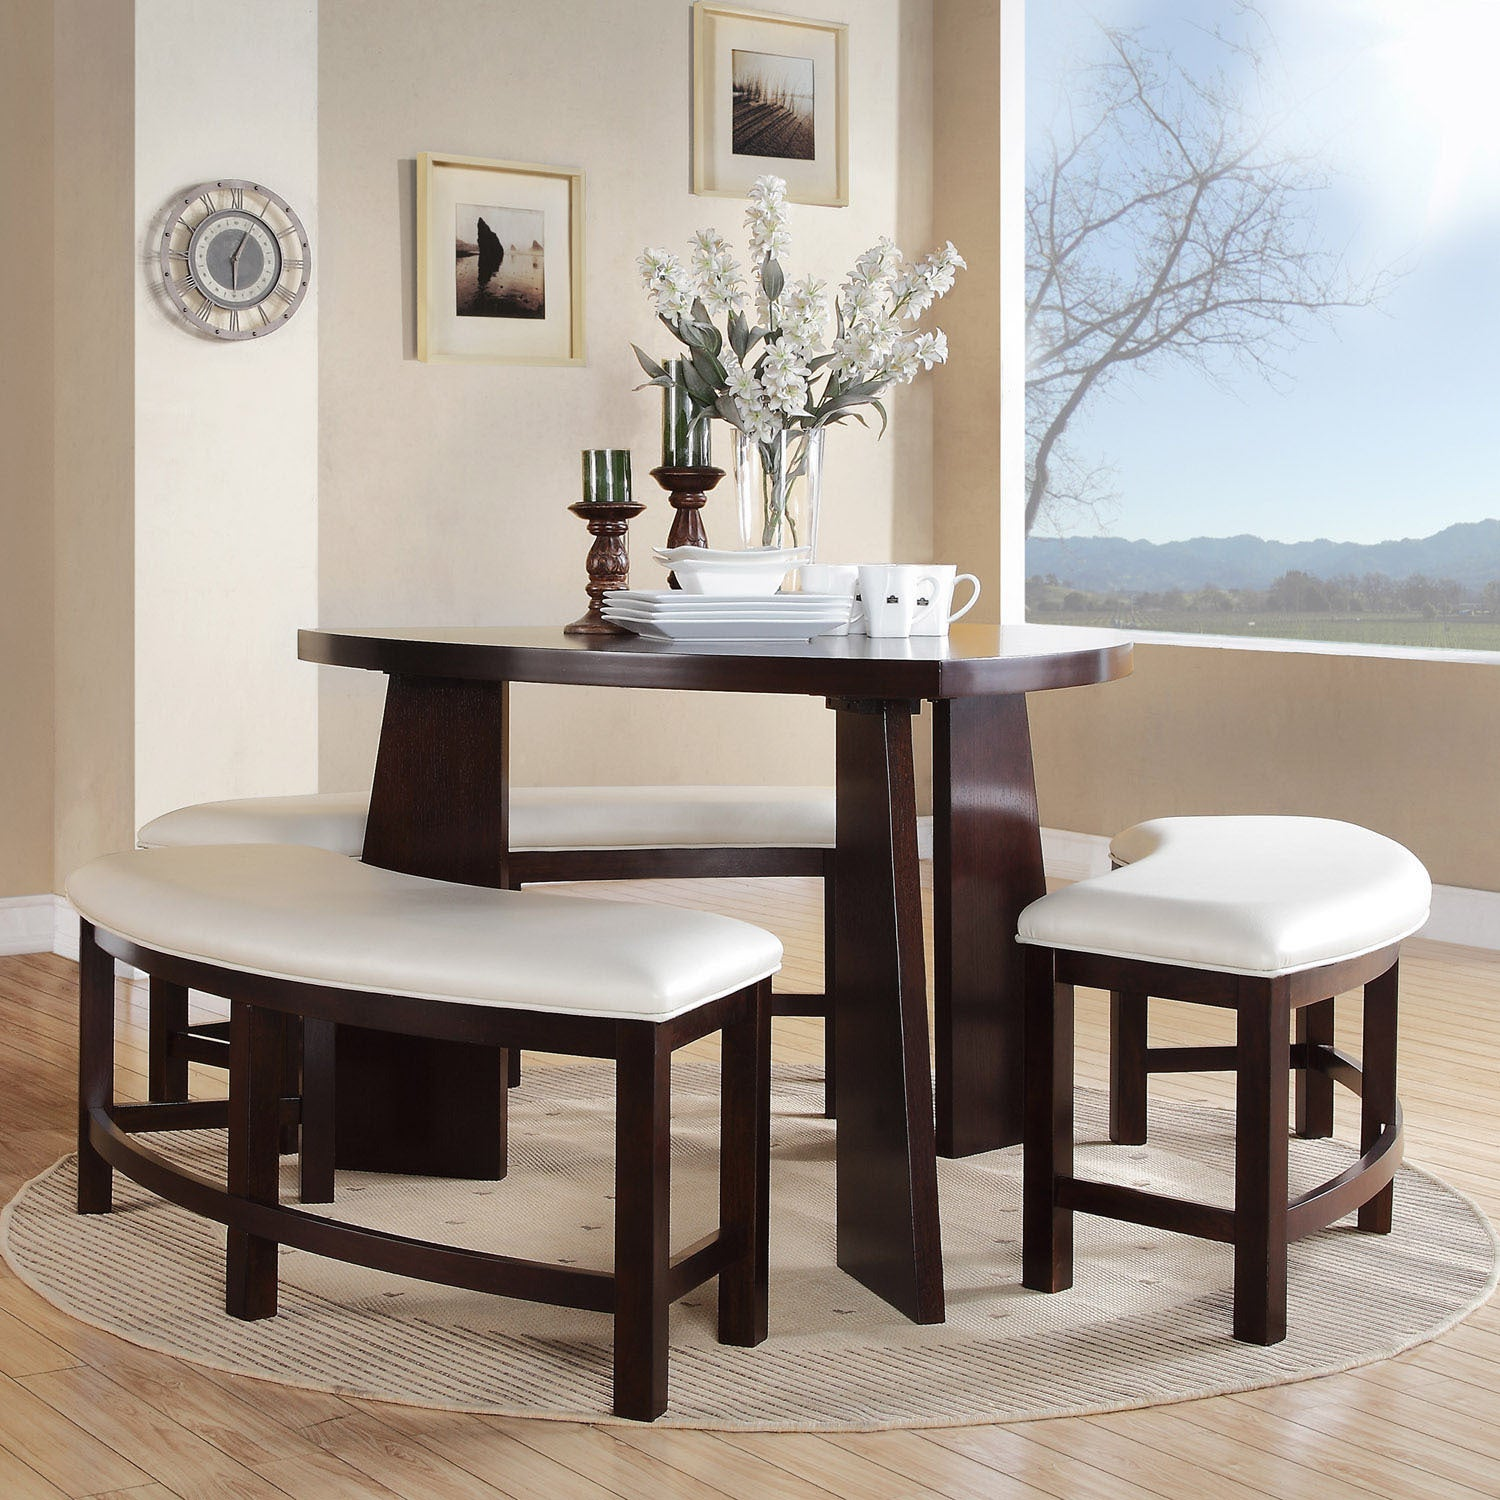 Shop Paradise Merlot Triangle Shaped 4 piece Dining Set by iNSPIRE Q